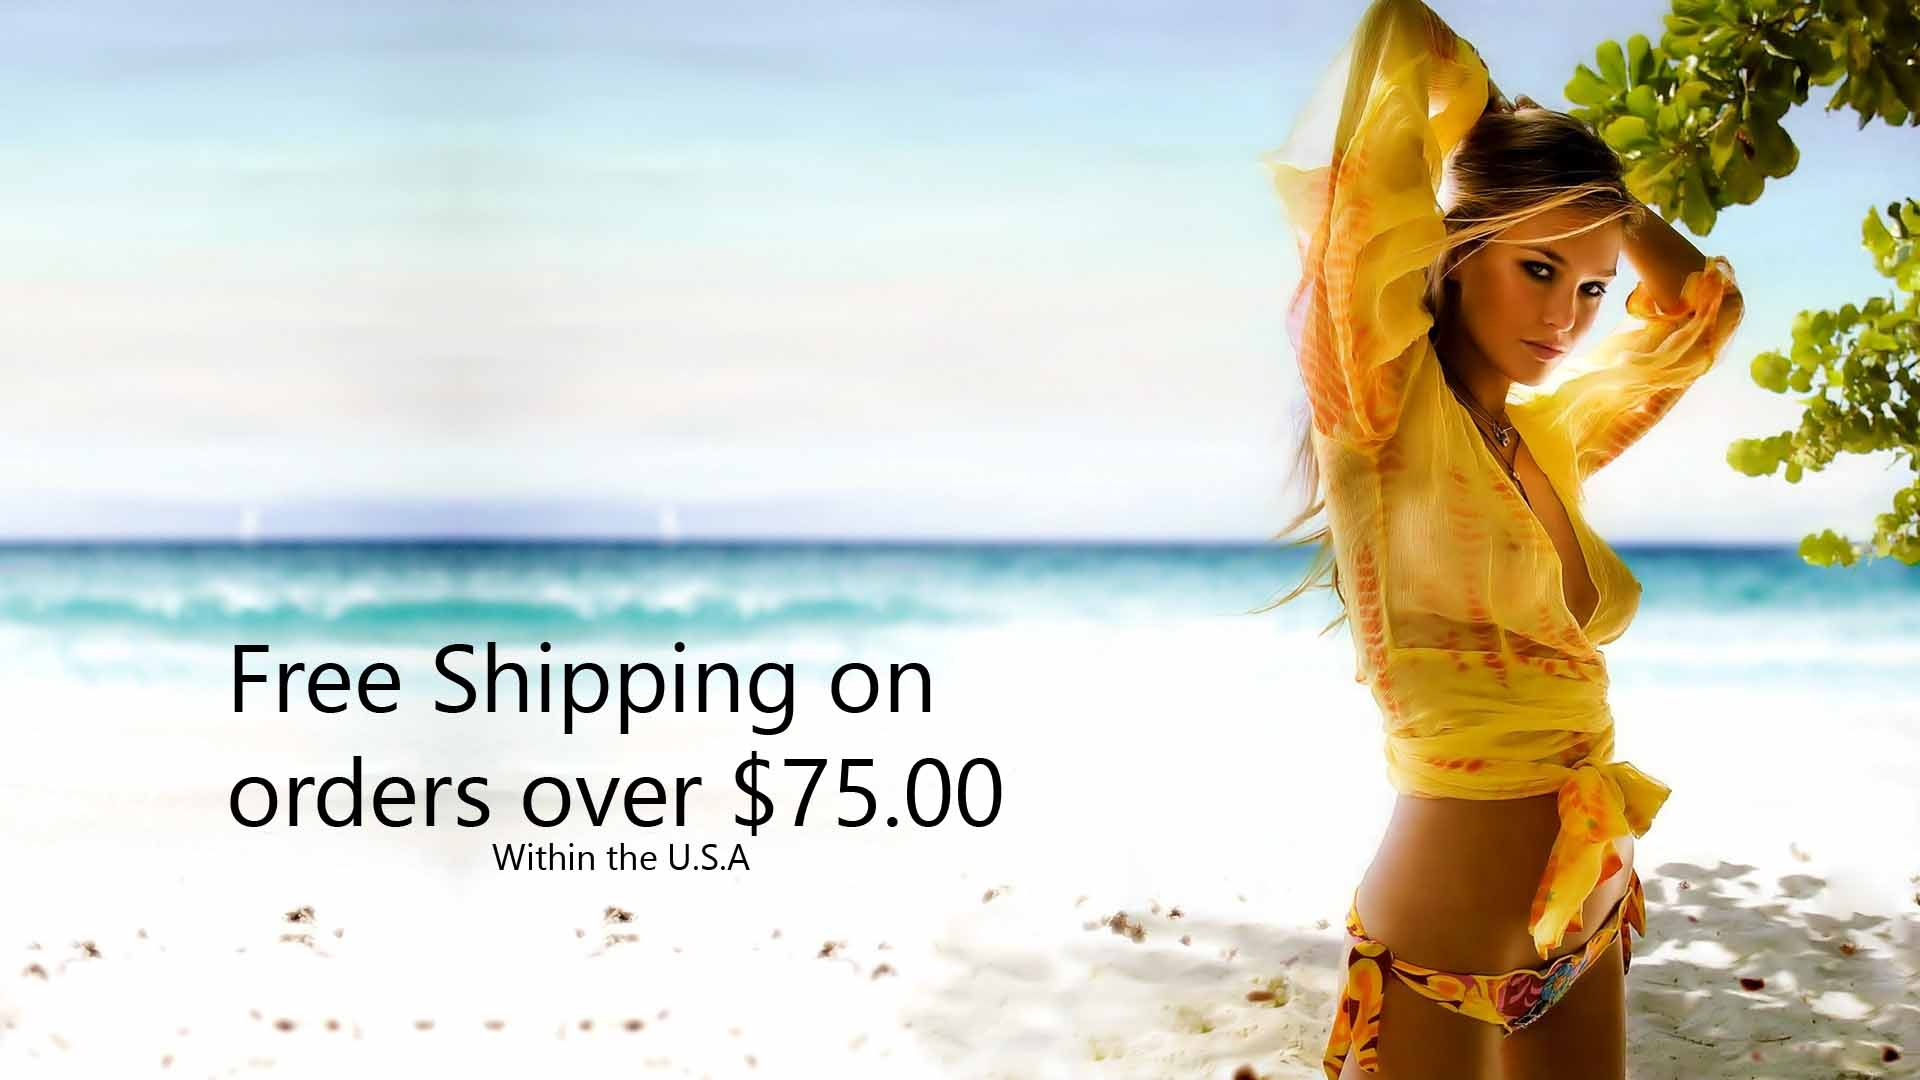 Free Shipping In U.S.A.